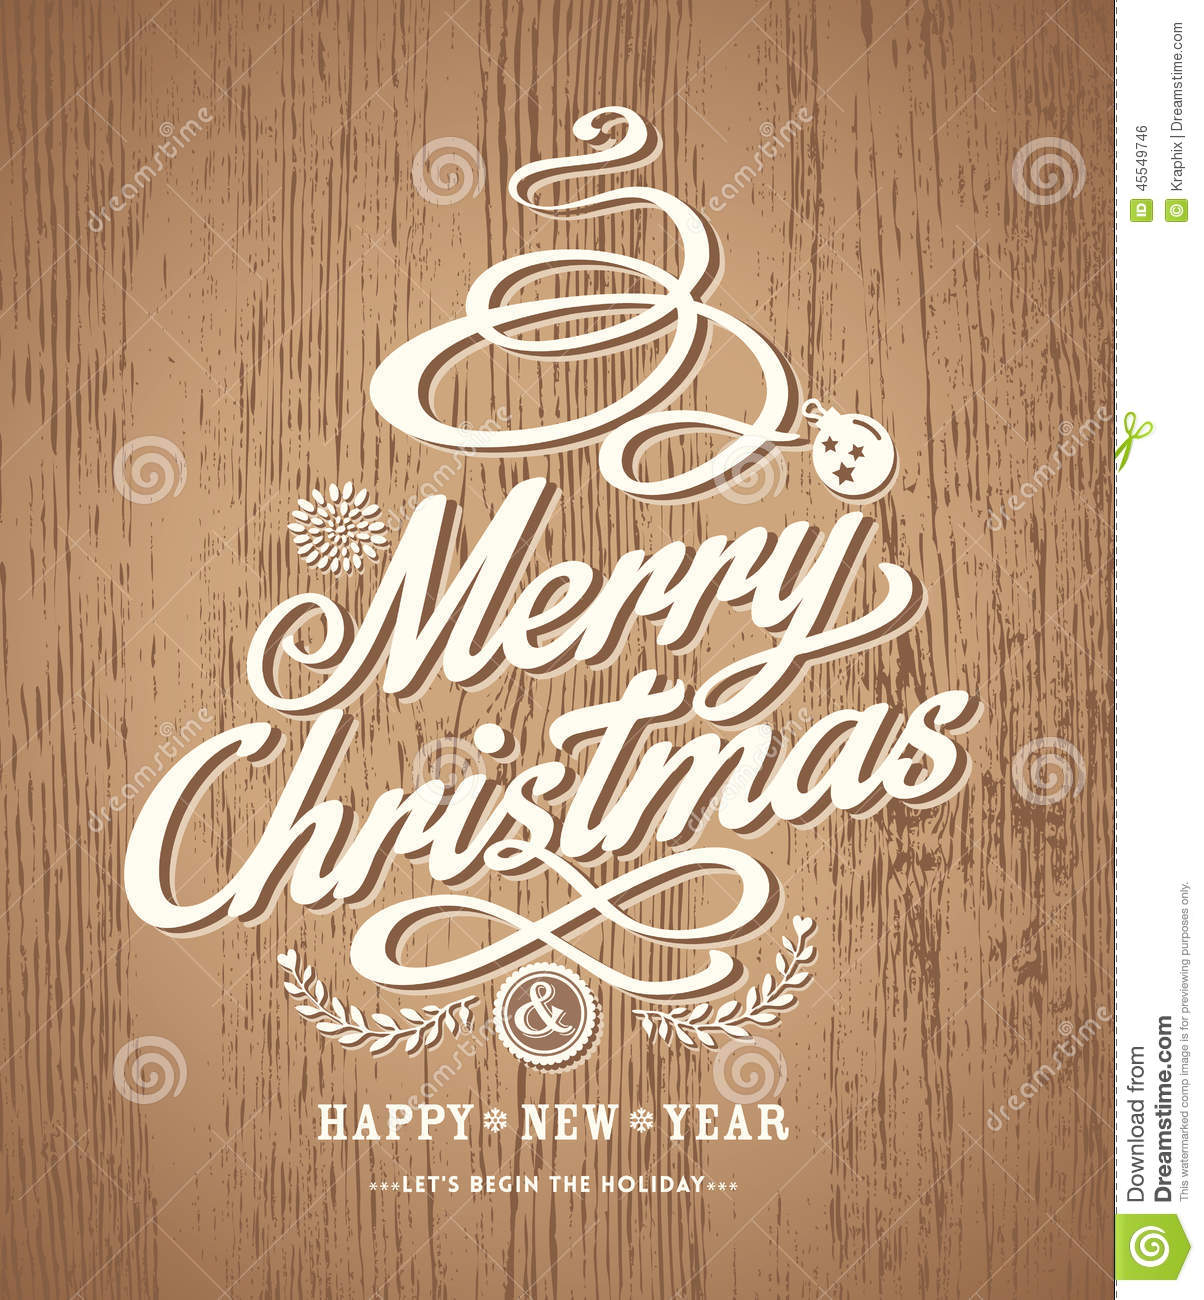 Christmas Card Design On Wood Texture Background Stock